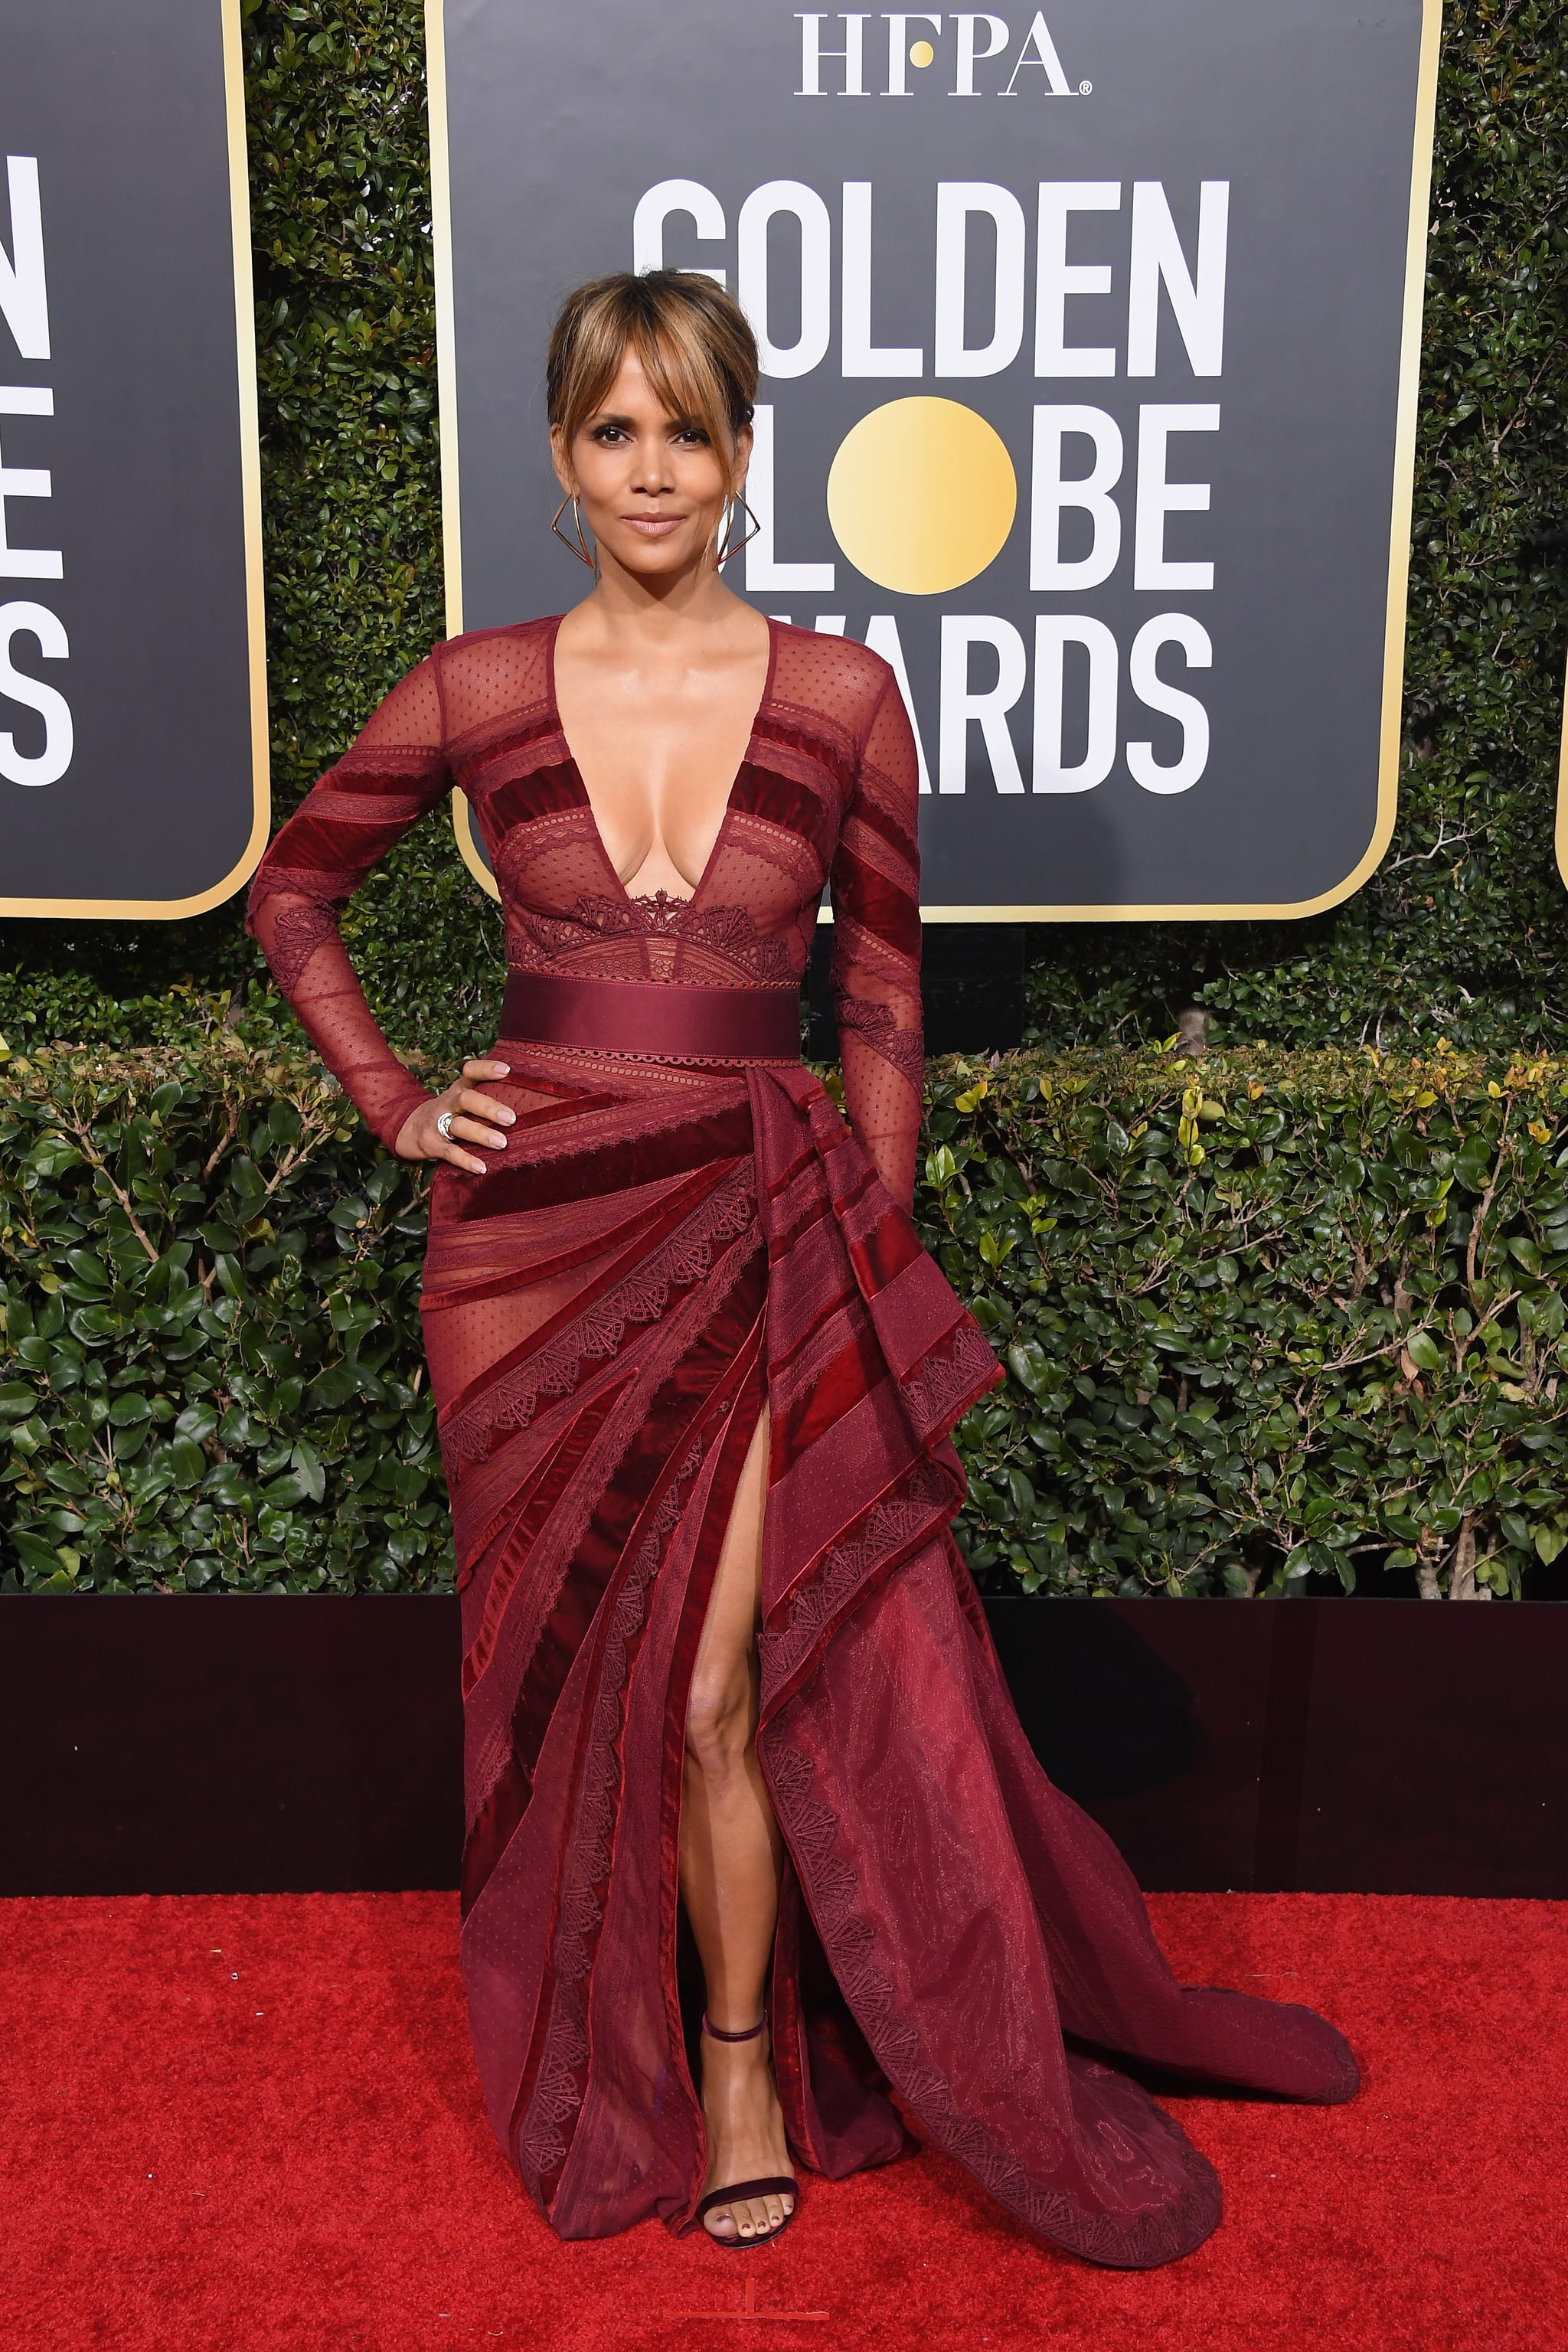 BEVERLY HILLS, CA - JANUARY 06:  Halle Berry attends the 76th Annual Golden Globe Awards at The Beverly Hilton Hotel on January 6, 2019 in Beverly Hills, California.  (Photo by Steve Granitz/WireImage)